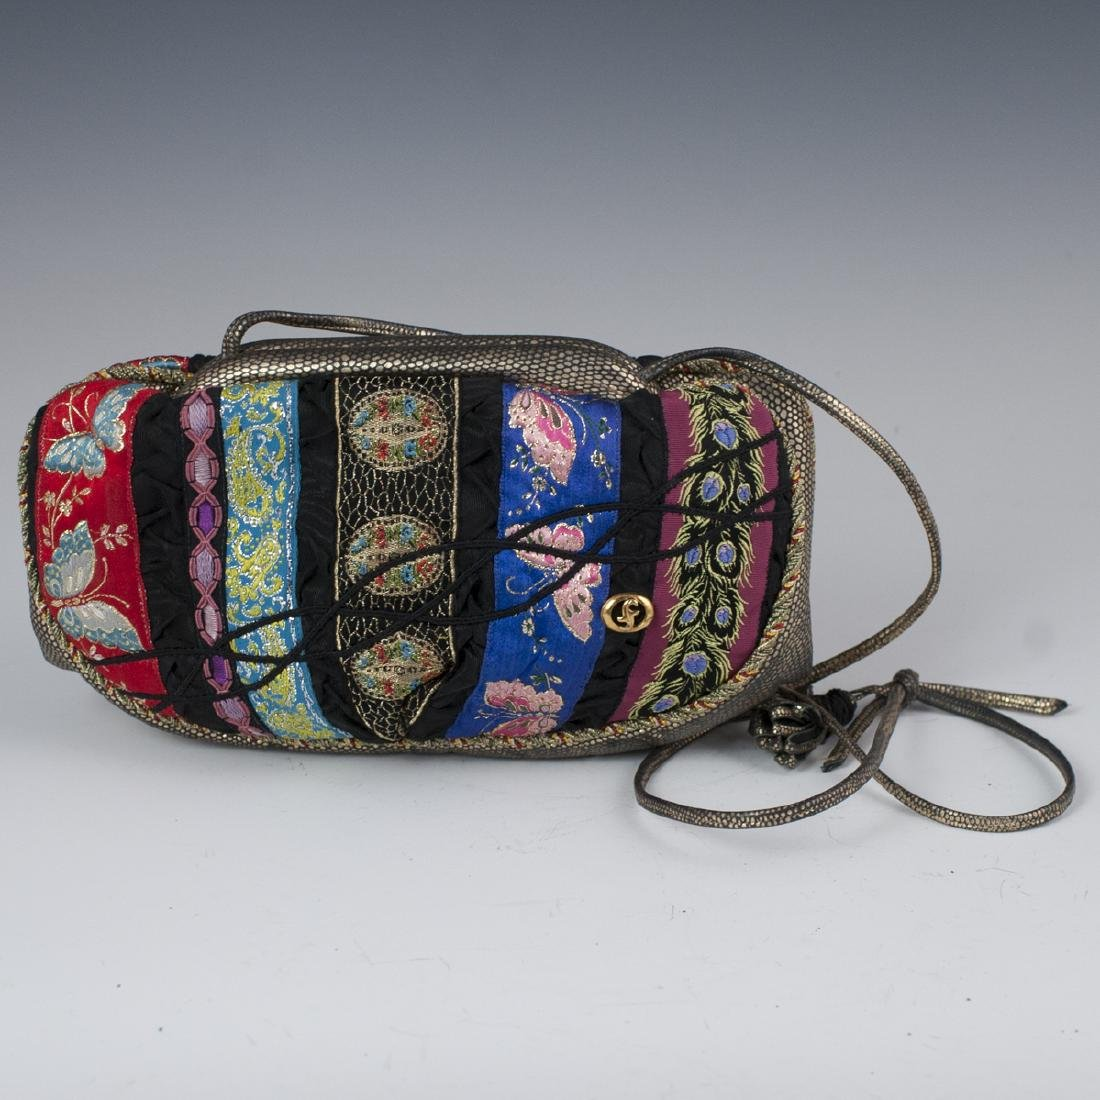 Carlo Fiori Patchwork & Leather Purse